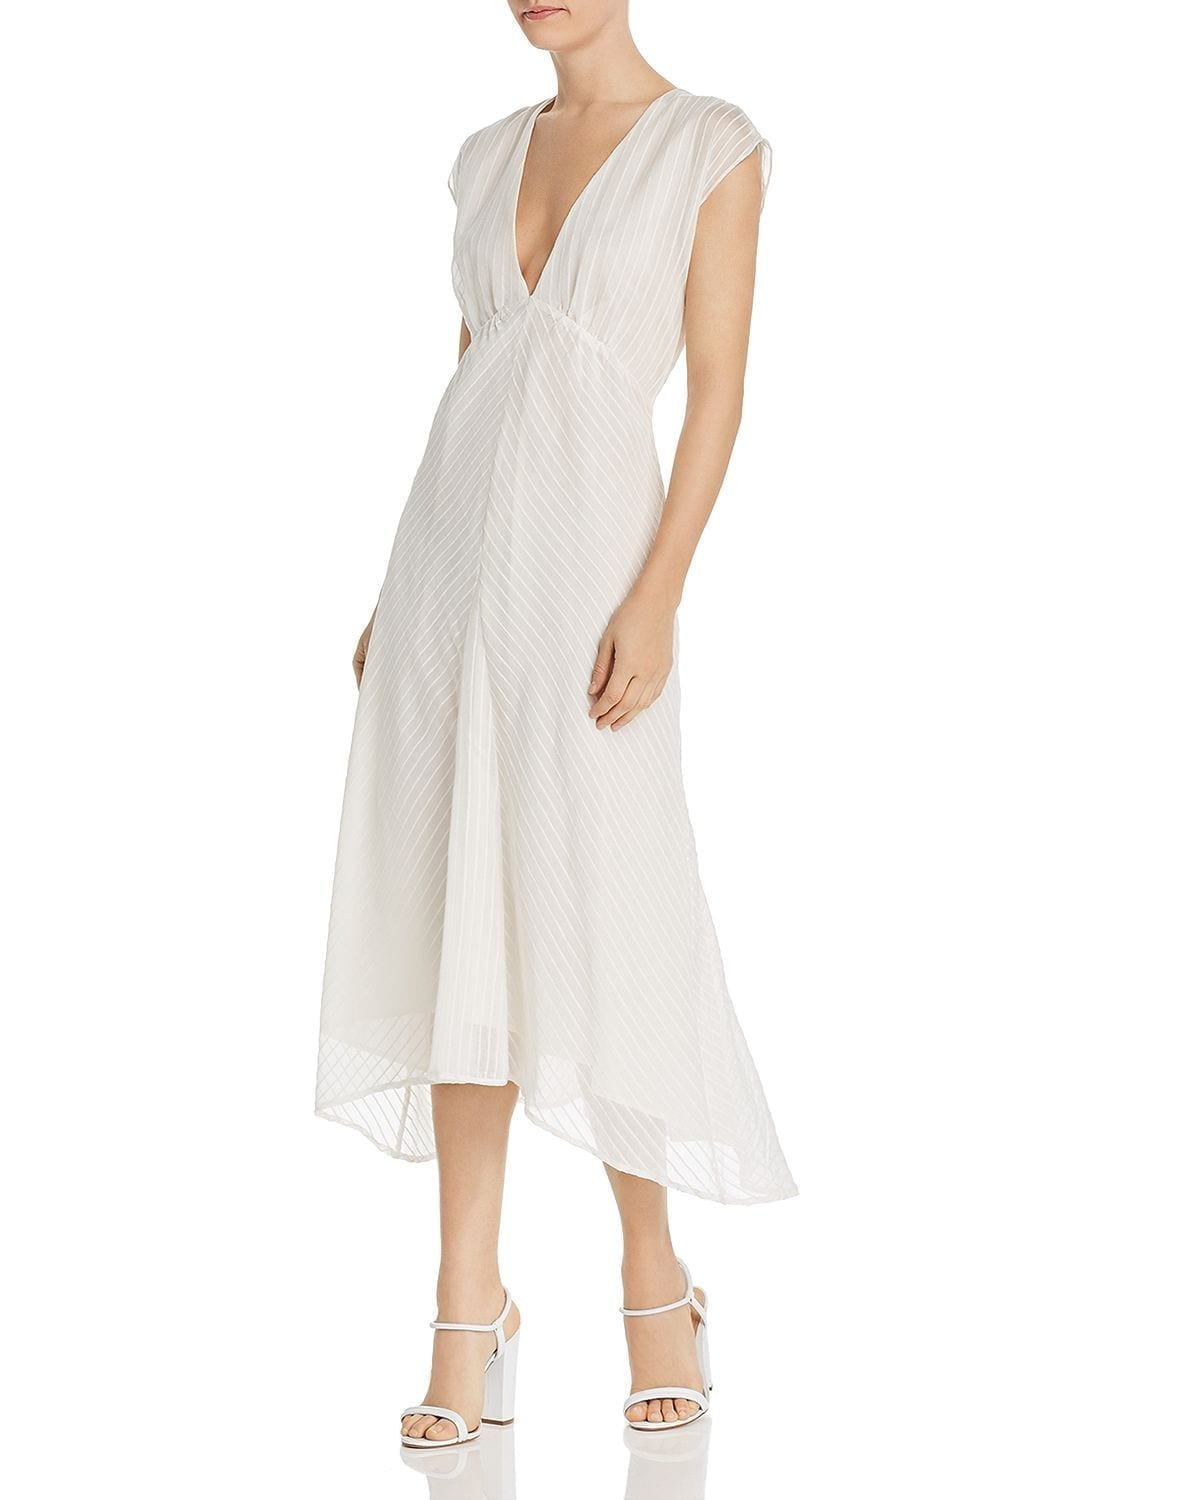 JOIE Shaeryl Striped Midi White Dress